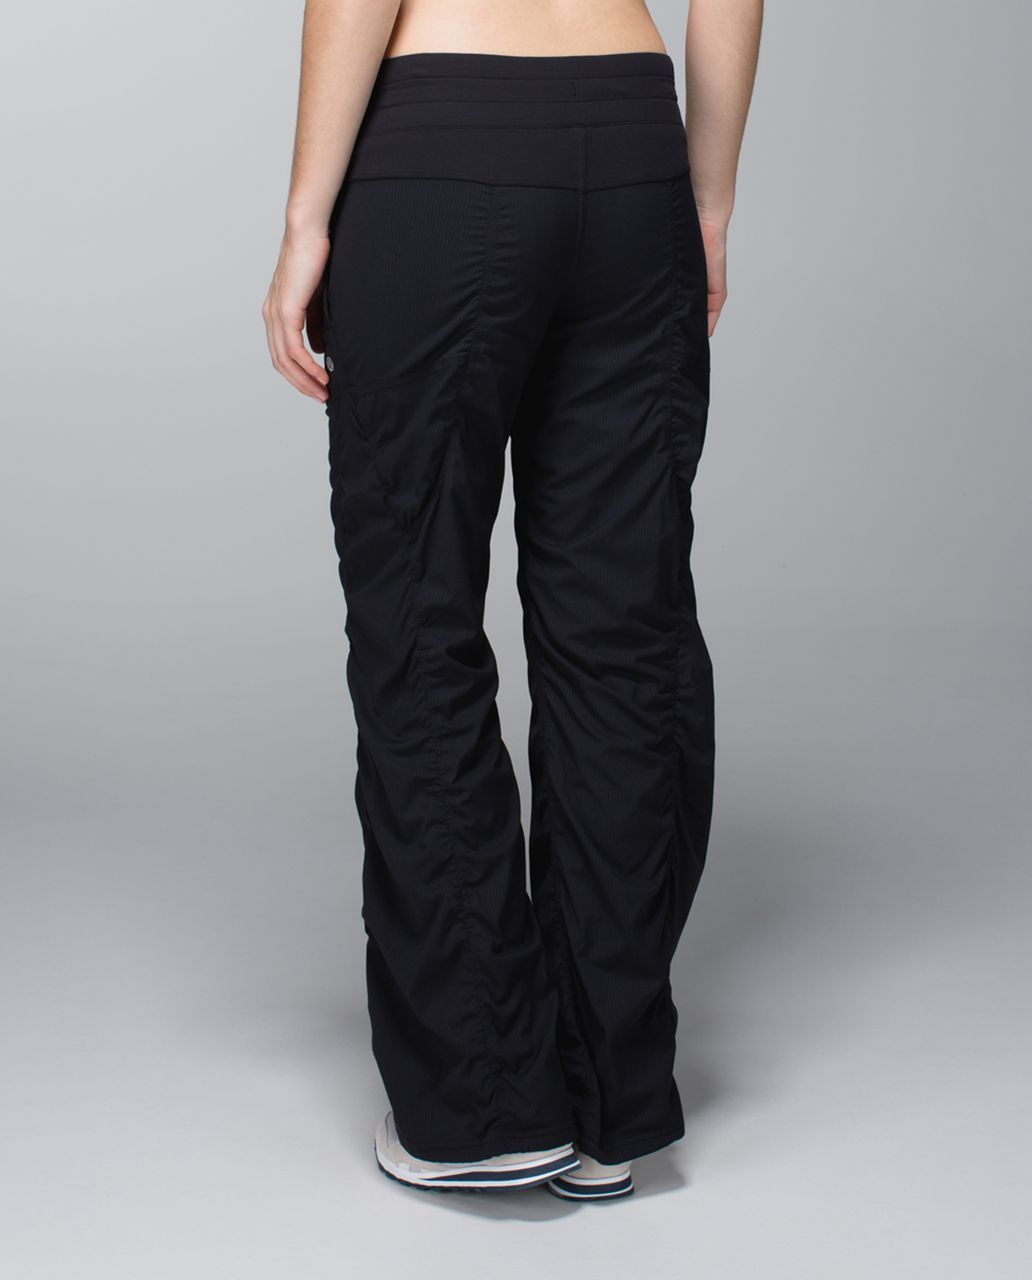 4d2b7201e9 Lululemon Studio Pant II *Liner (Regular) - Black in 2019 ...